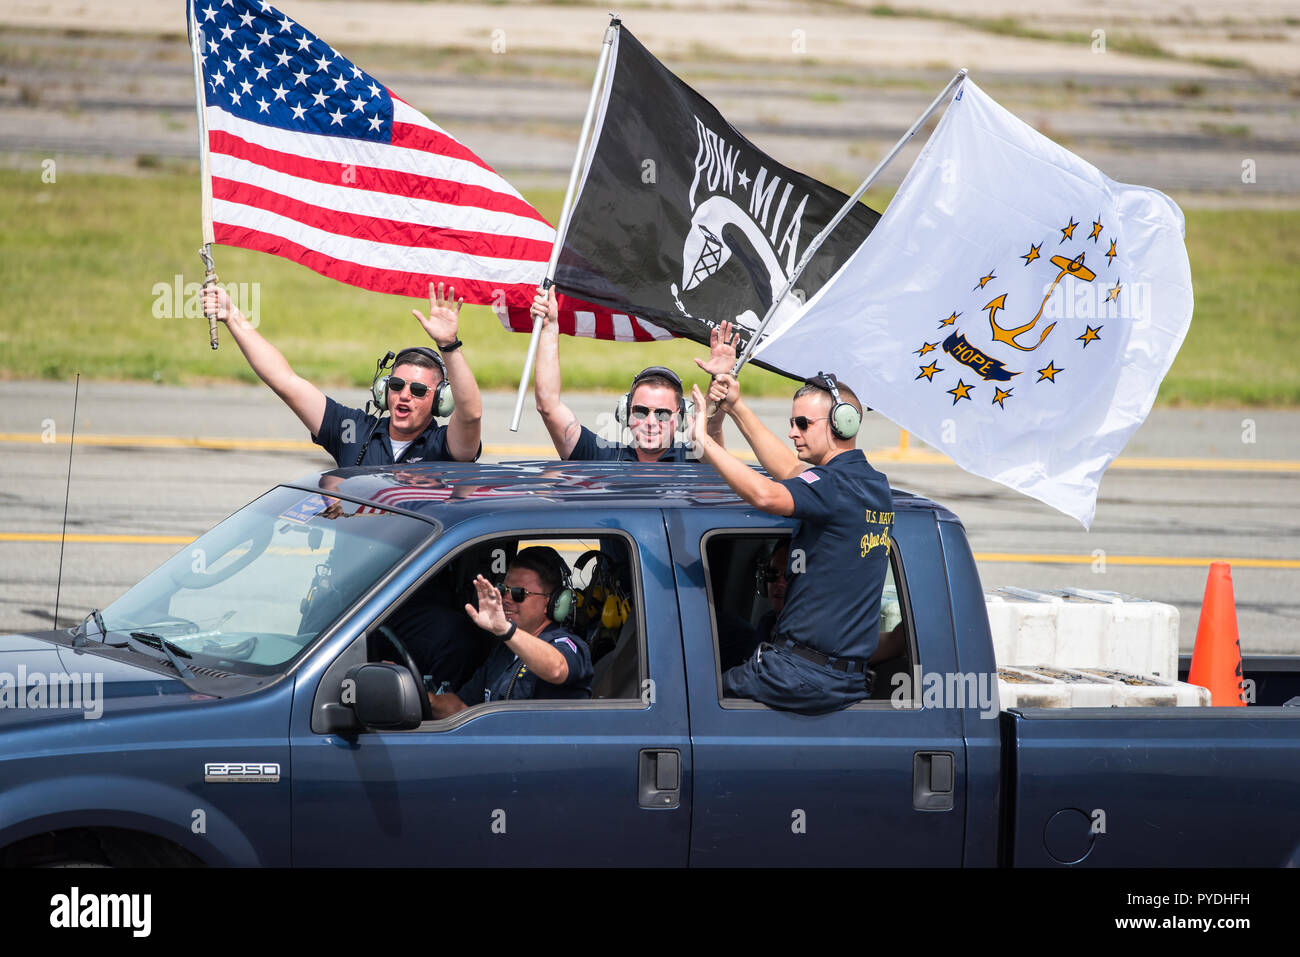 US Navy Blue Angels Ground Crew celebrating and waving to the crowd - Stock Image